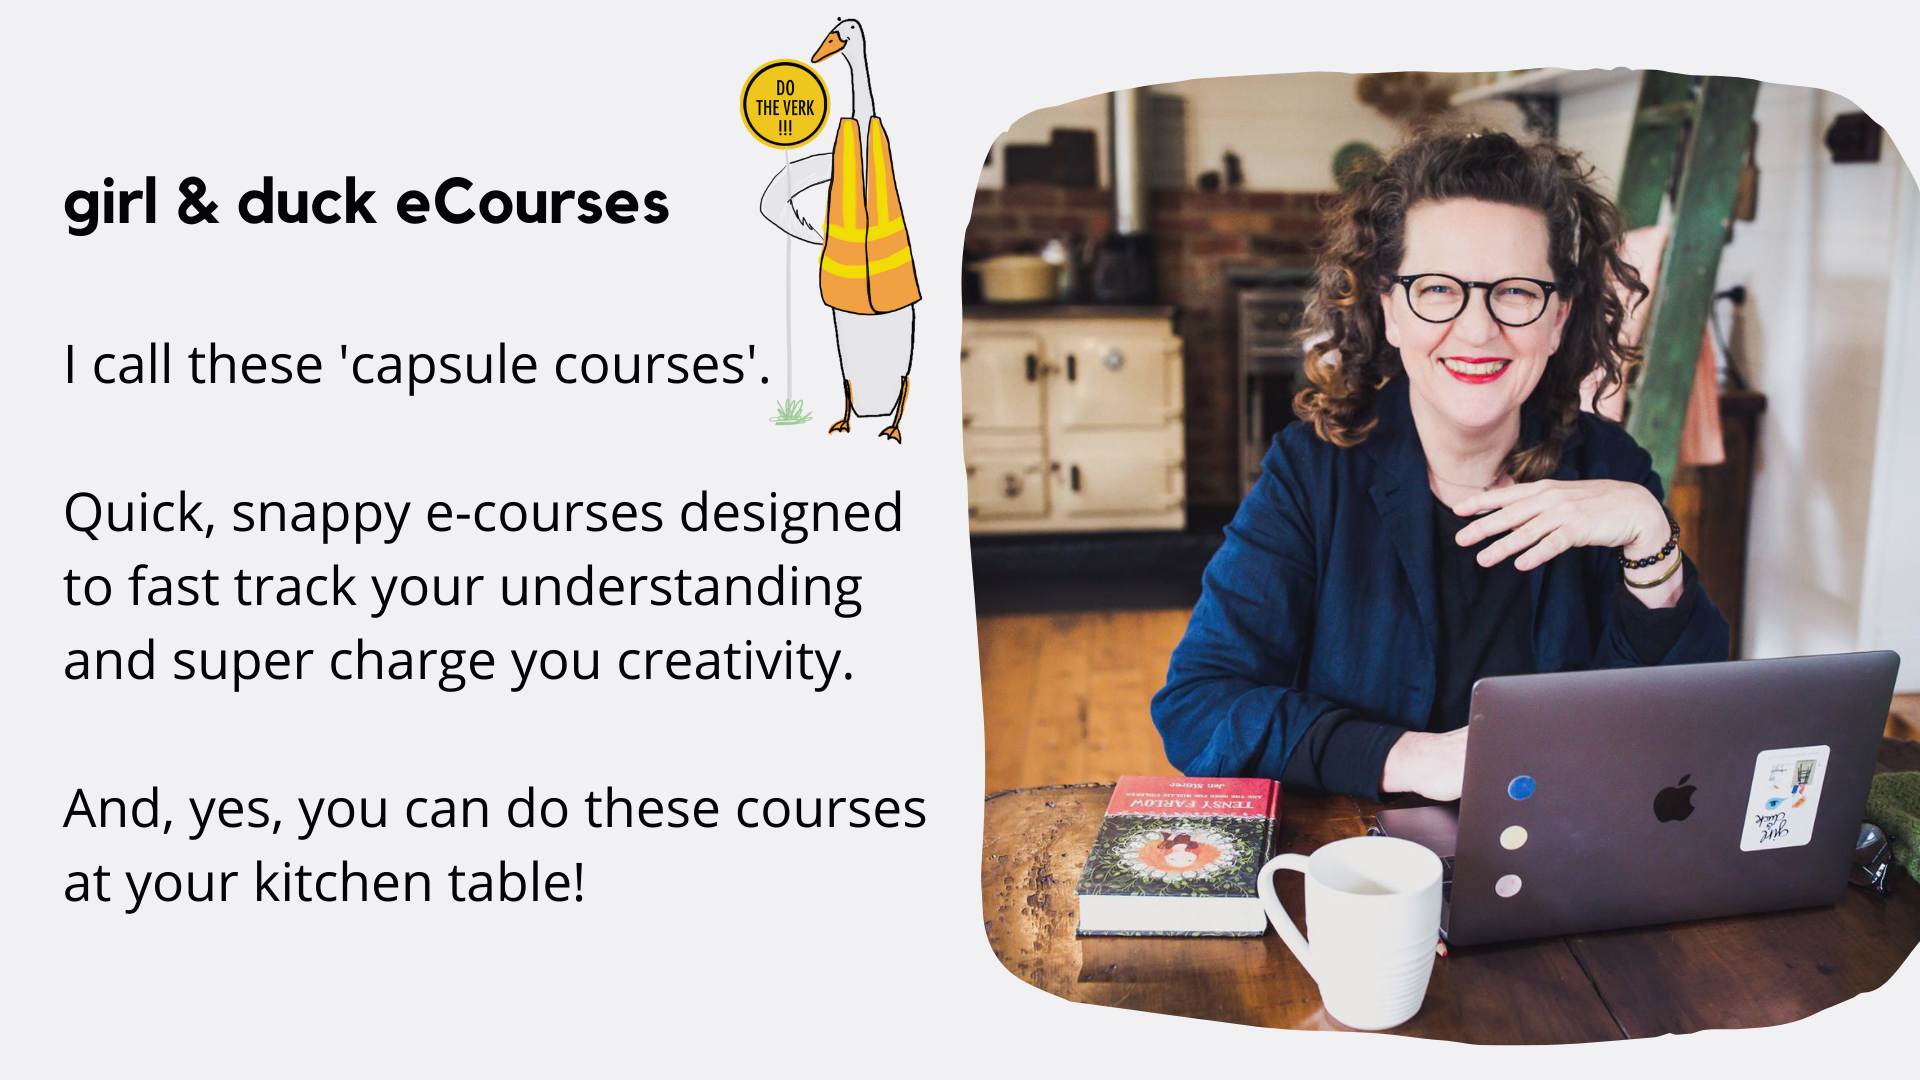 girl & duck eCourses I call these 'capsule courses'. Quick, snappy e-courses designed to fast track your understanding and super charge you creativity. And, yes, you can do these courses at your kitchen table!